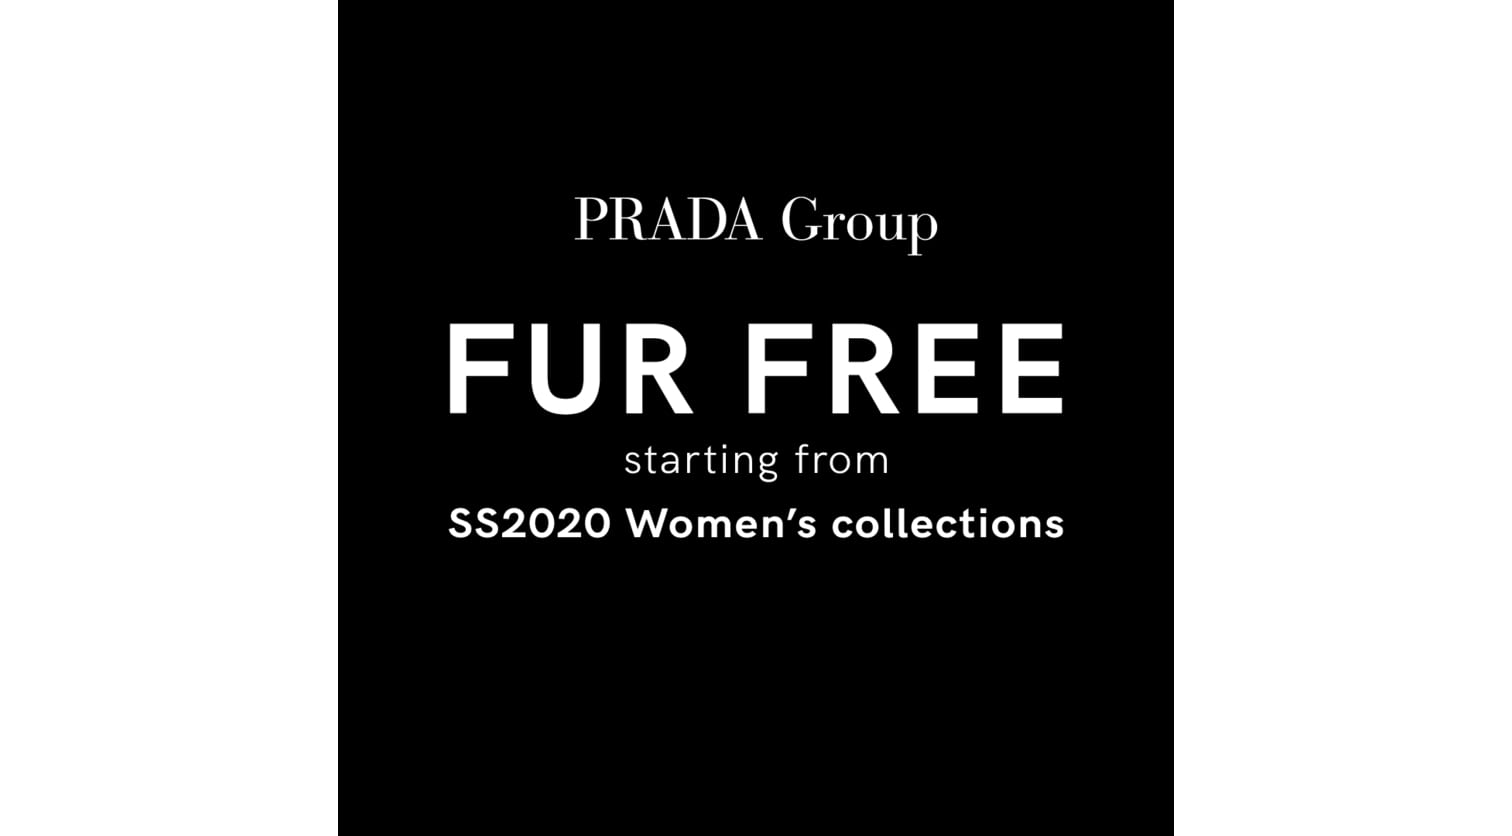 pradagroup  Fur Free Social Media Announcement.jpg